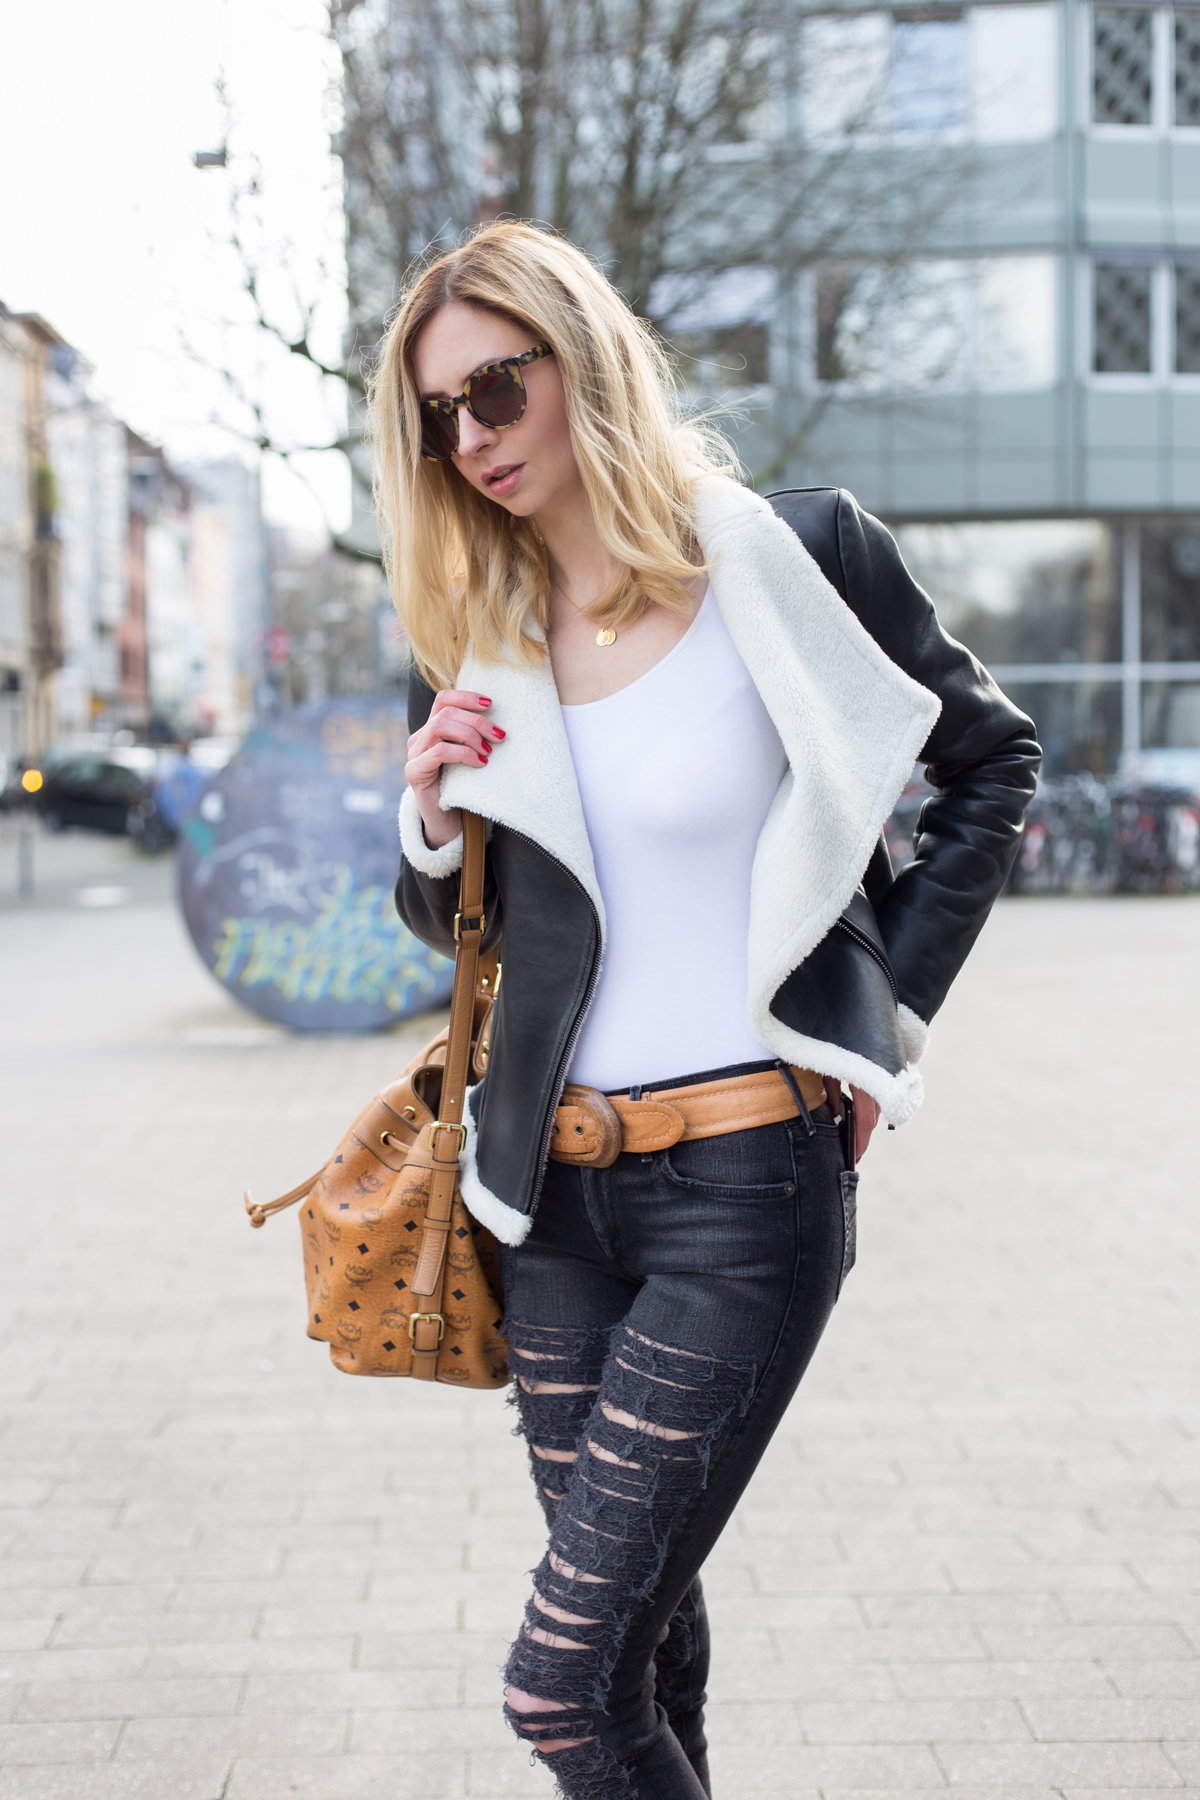 Destroyed Jeans & Leather I MBFW Berlin I How I met my outfit by Dana Lohmüller